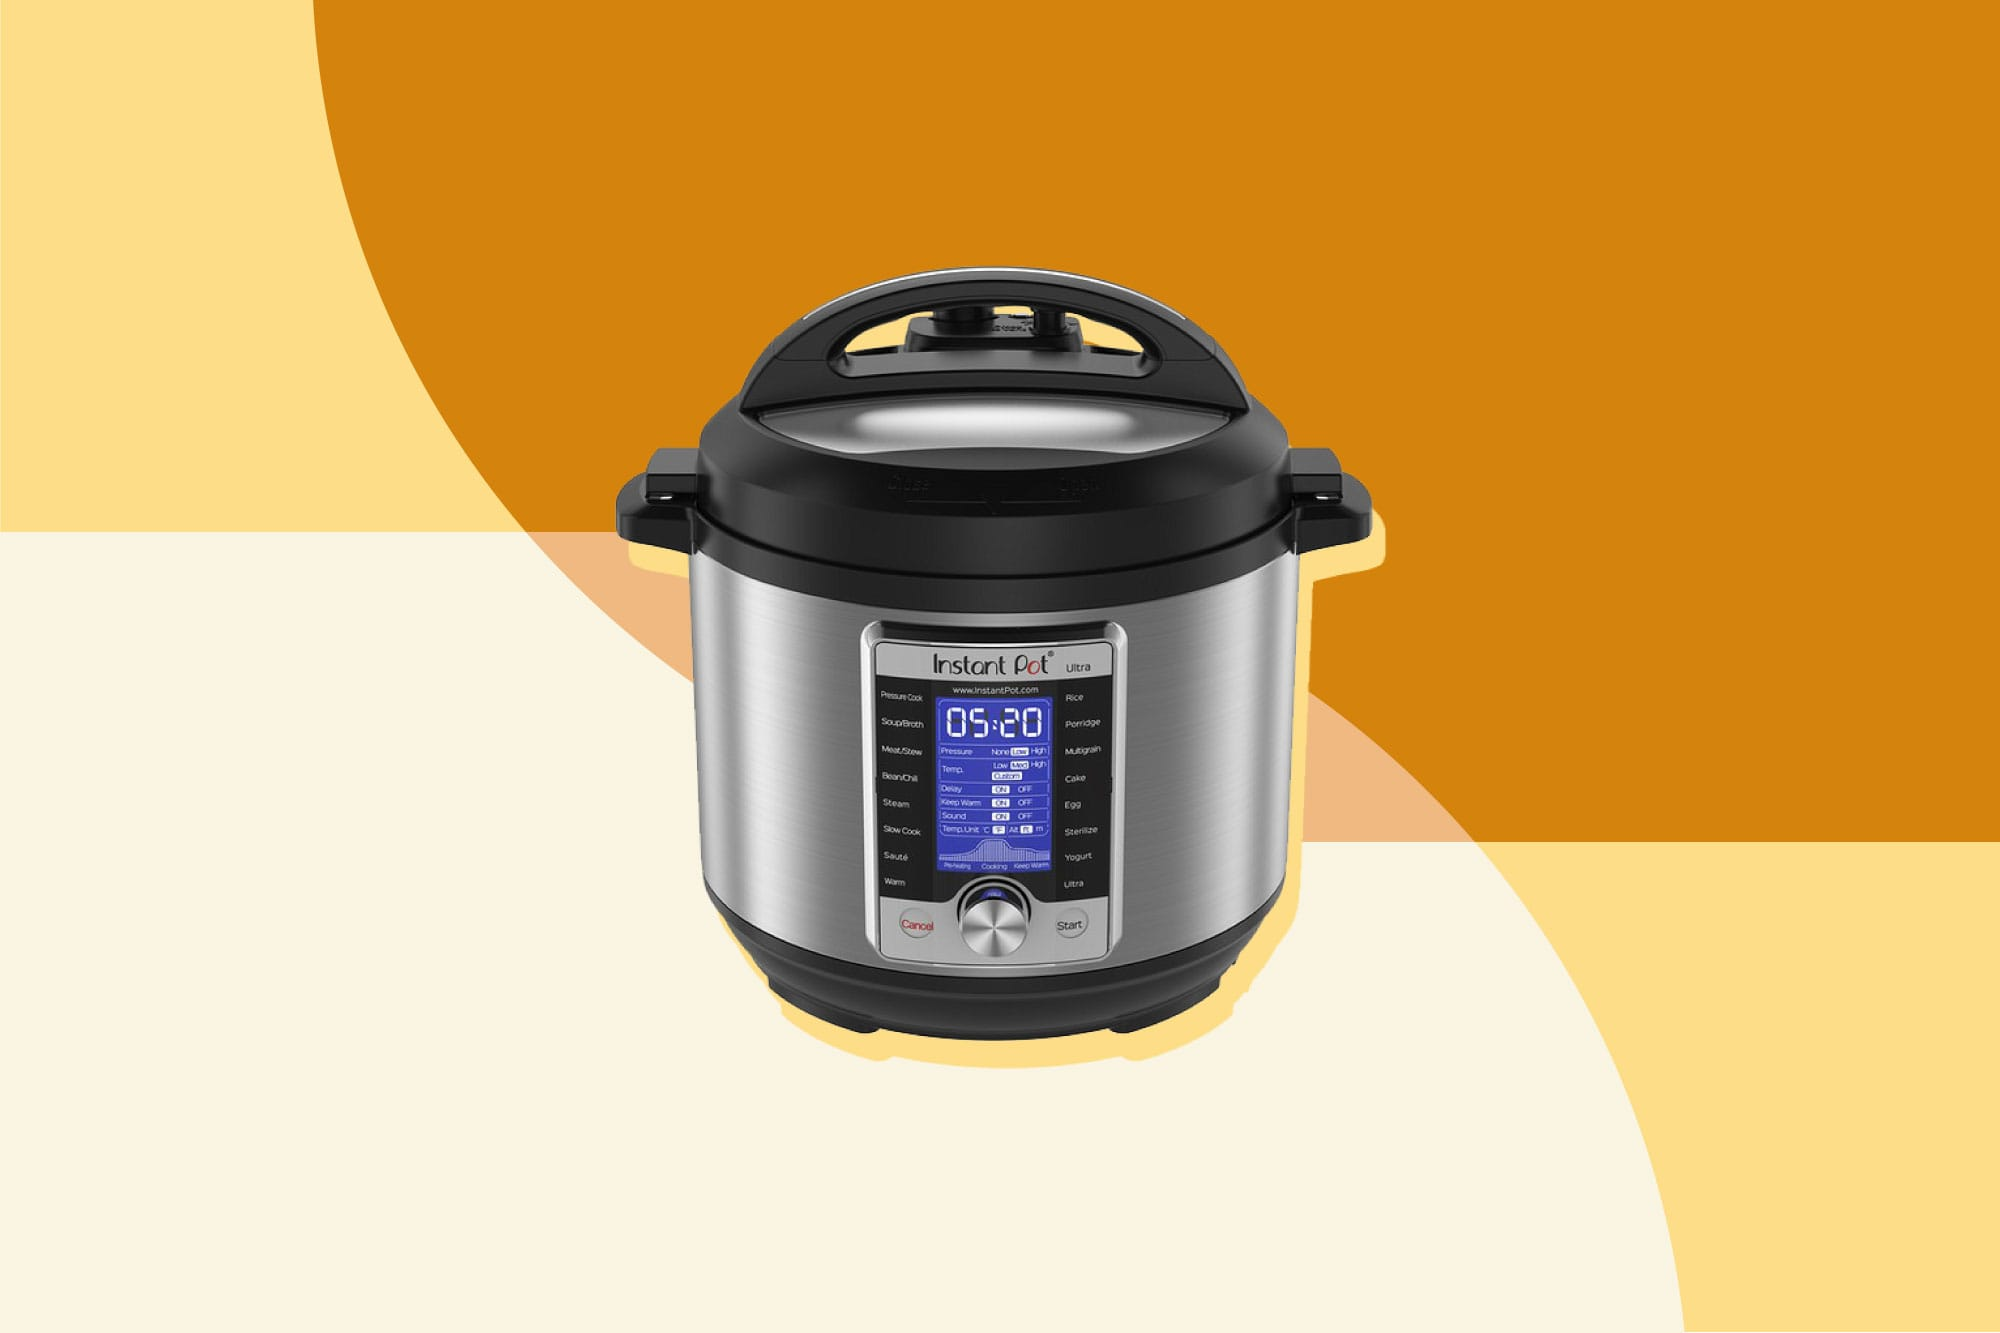 The Instant Pot Ultra is on Sale at Sur la Table From Now Until Sunday